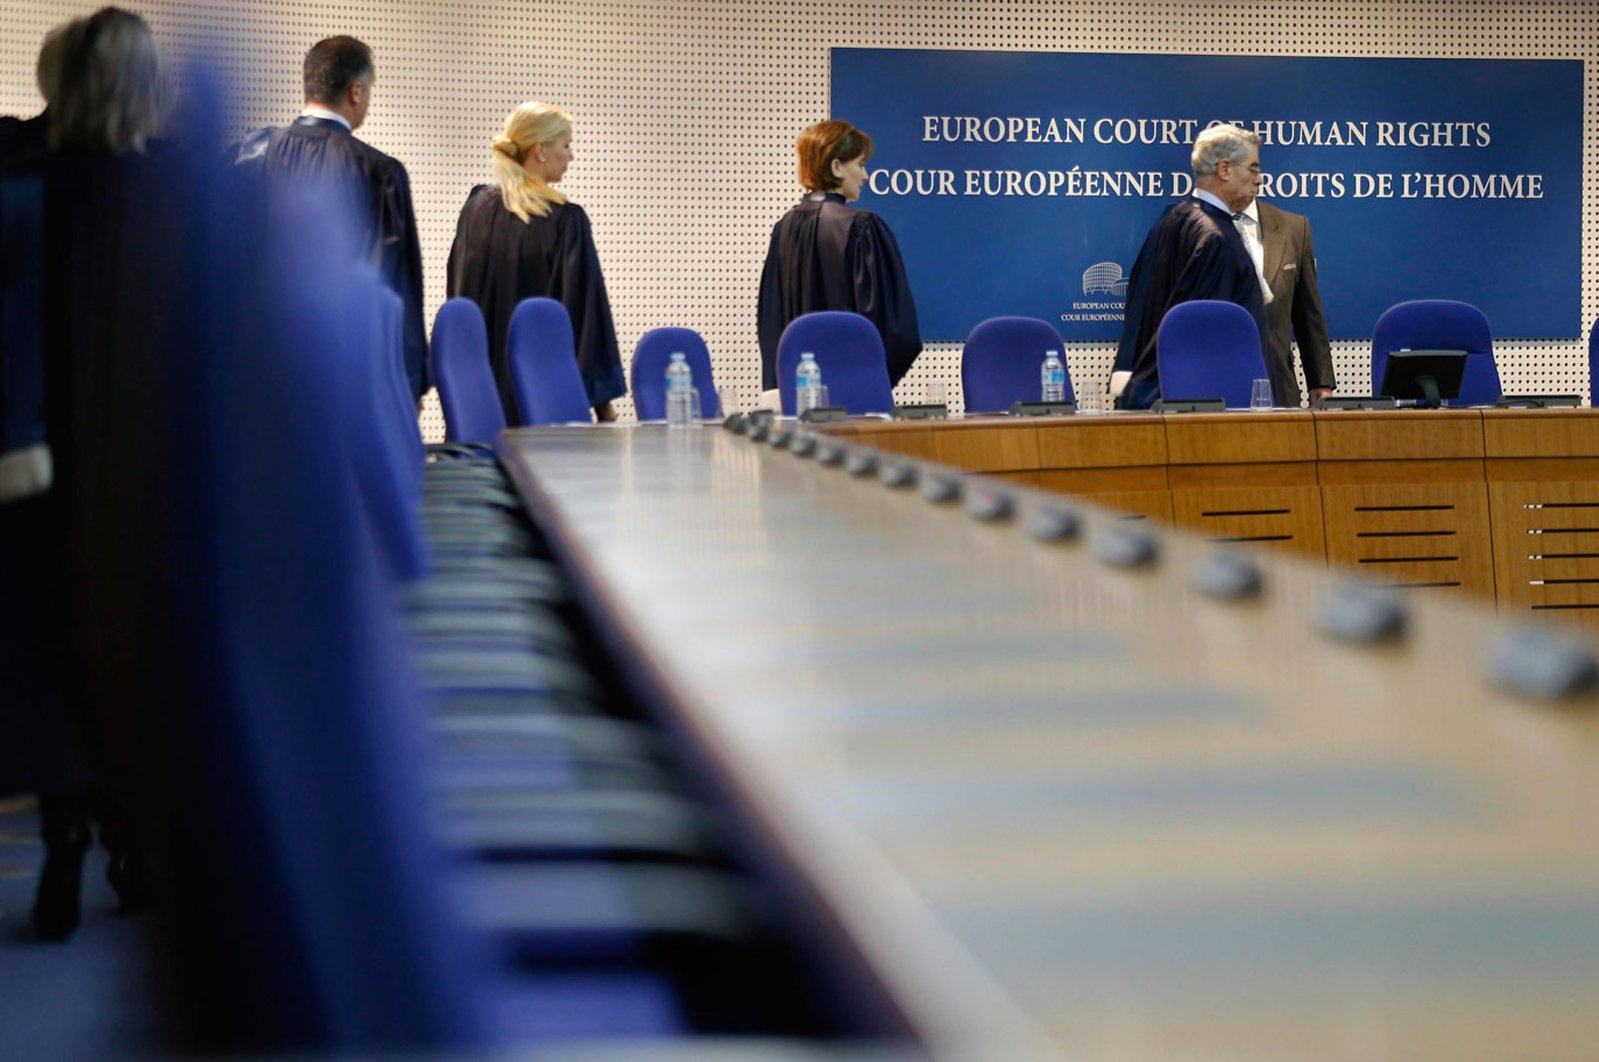 Judges of the European Court of Human Rights enter the hearing room of the court in Strasbourg, France, Dec. 3, 2013.